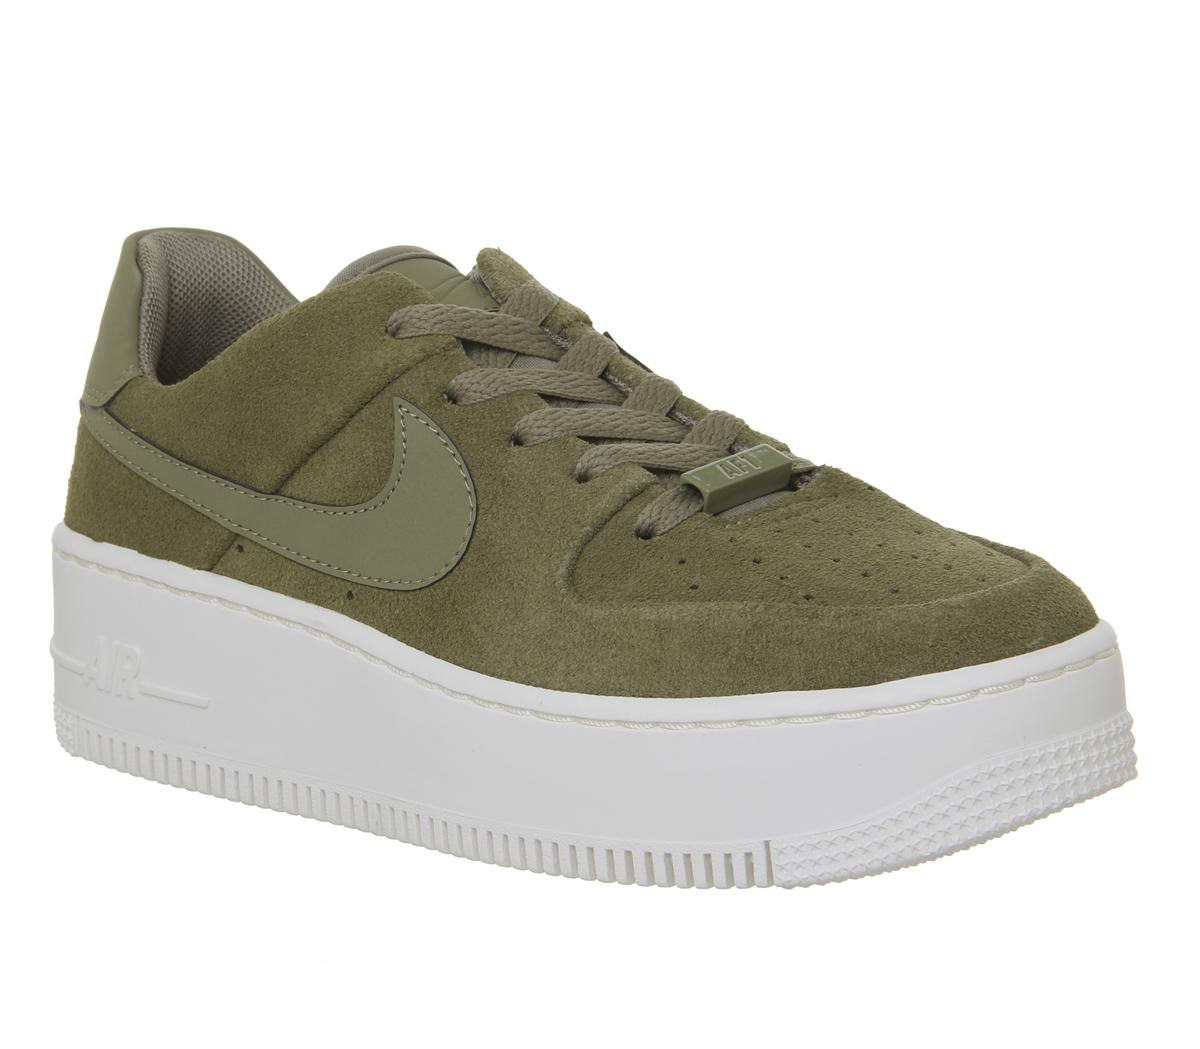 Air Force Sage 1 Trainers Trooper Phantom Nike Hers rdCsxhtQB